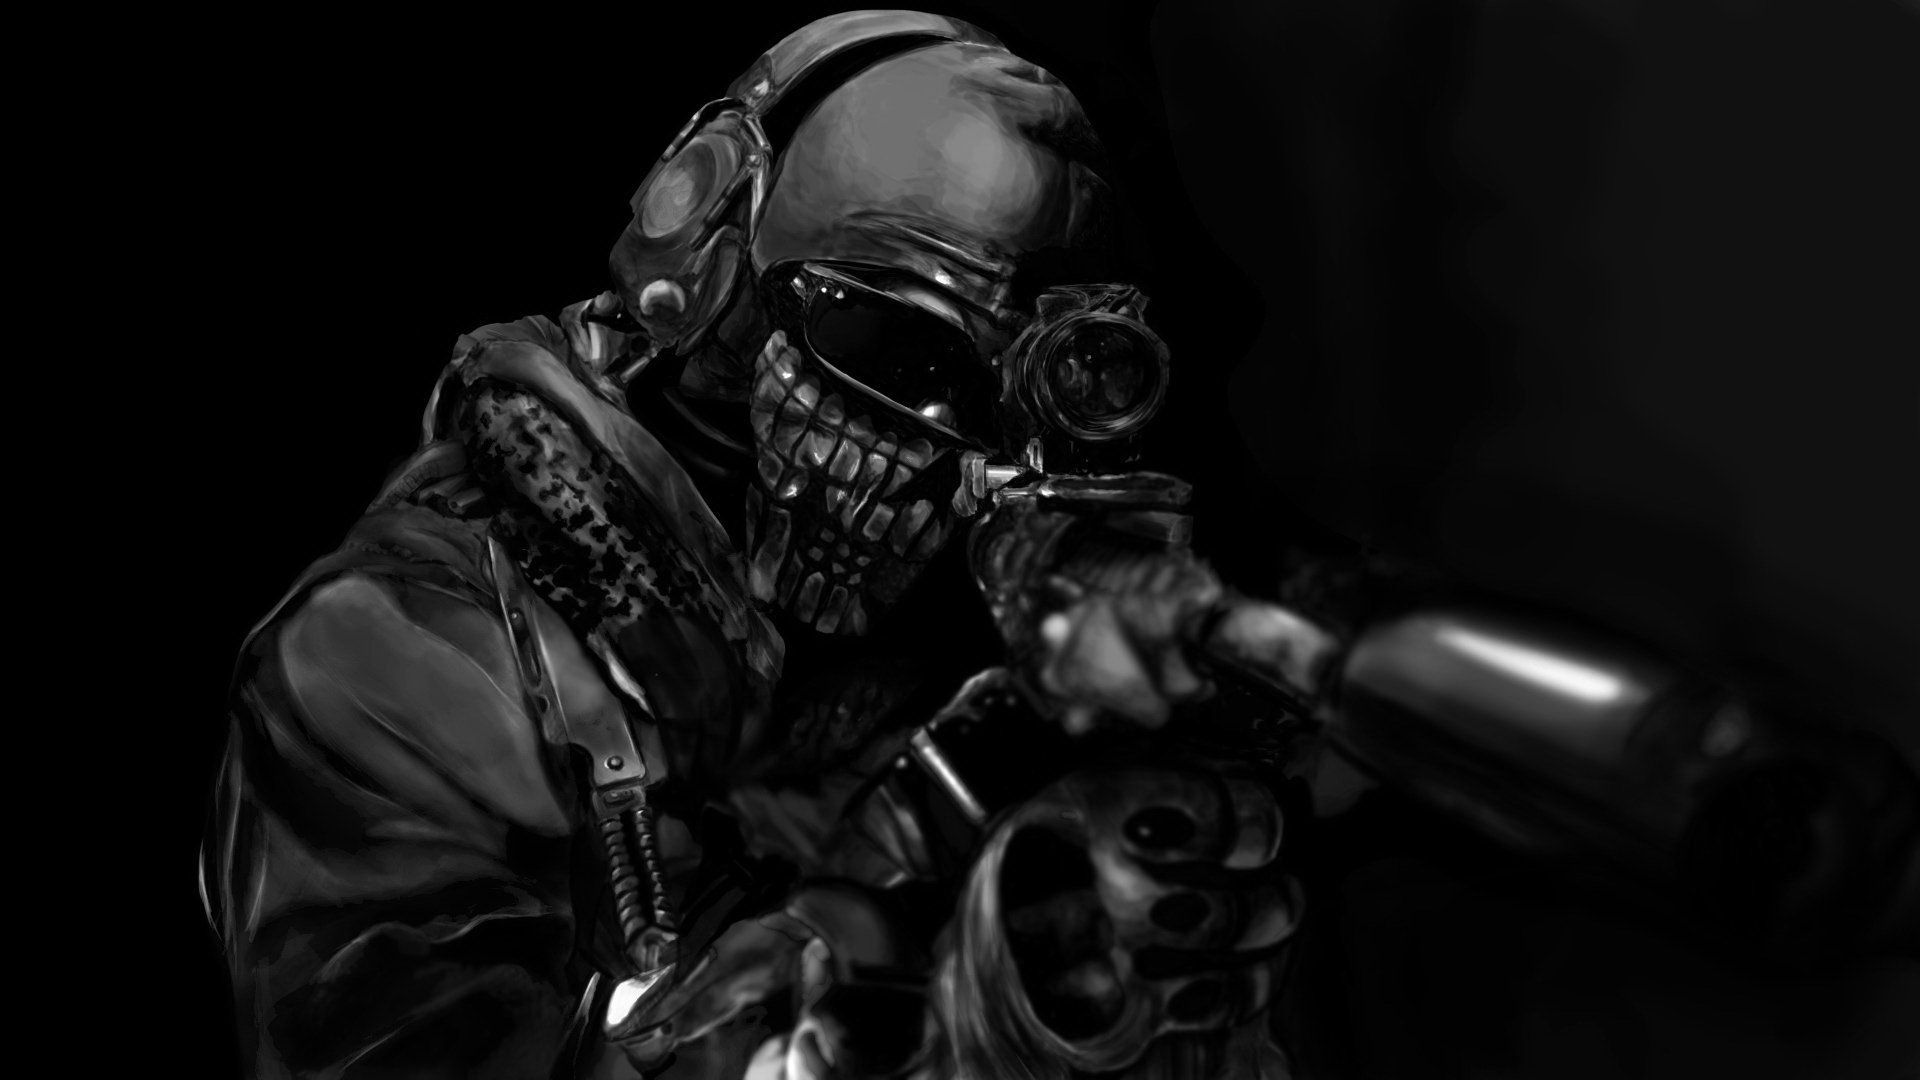 Pin By Yautja Prime On Militar Call Of Duty Ghosts Call Of Duty Black Call Of Duty